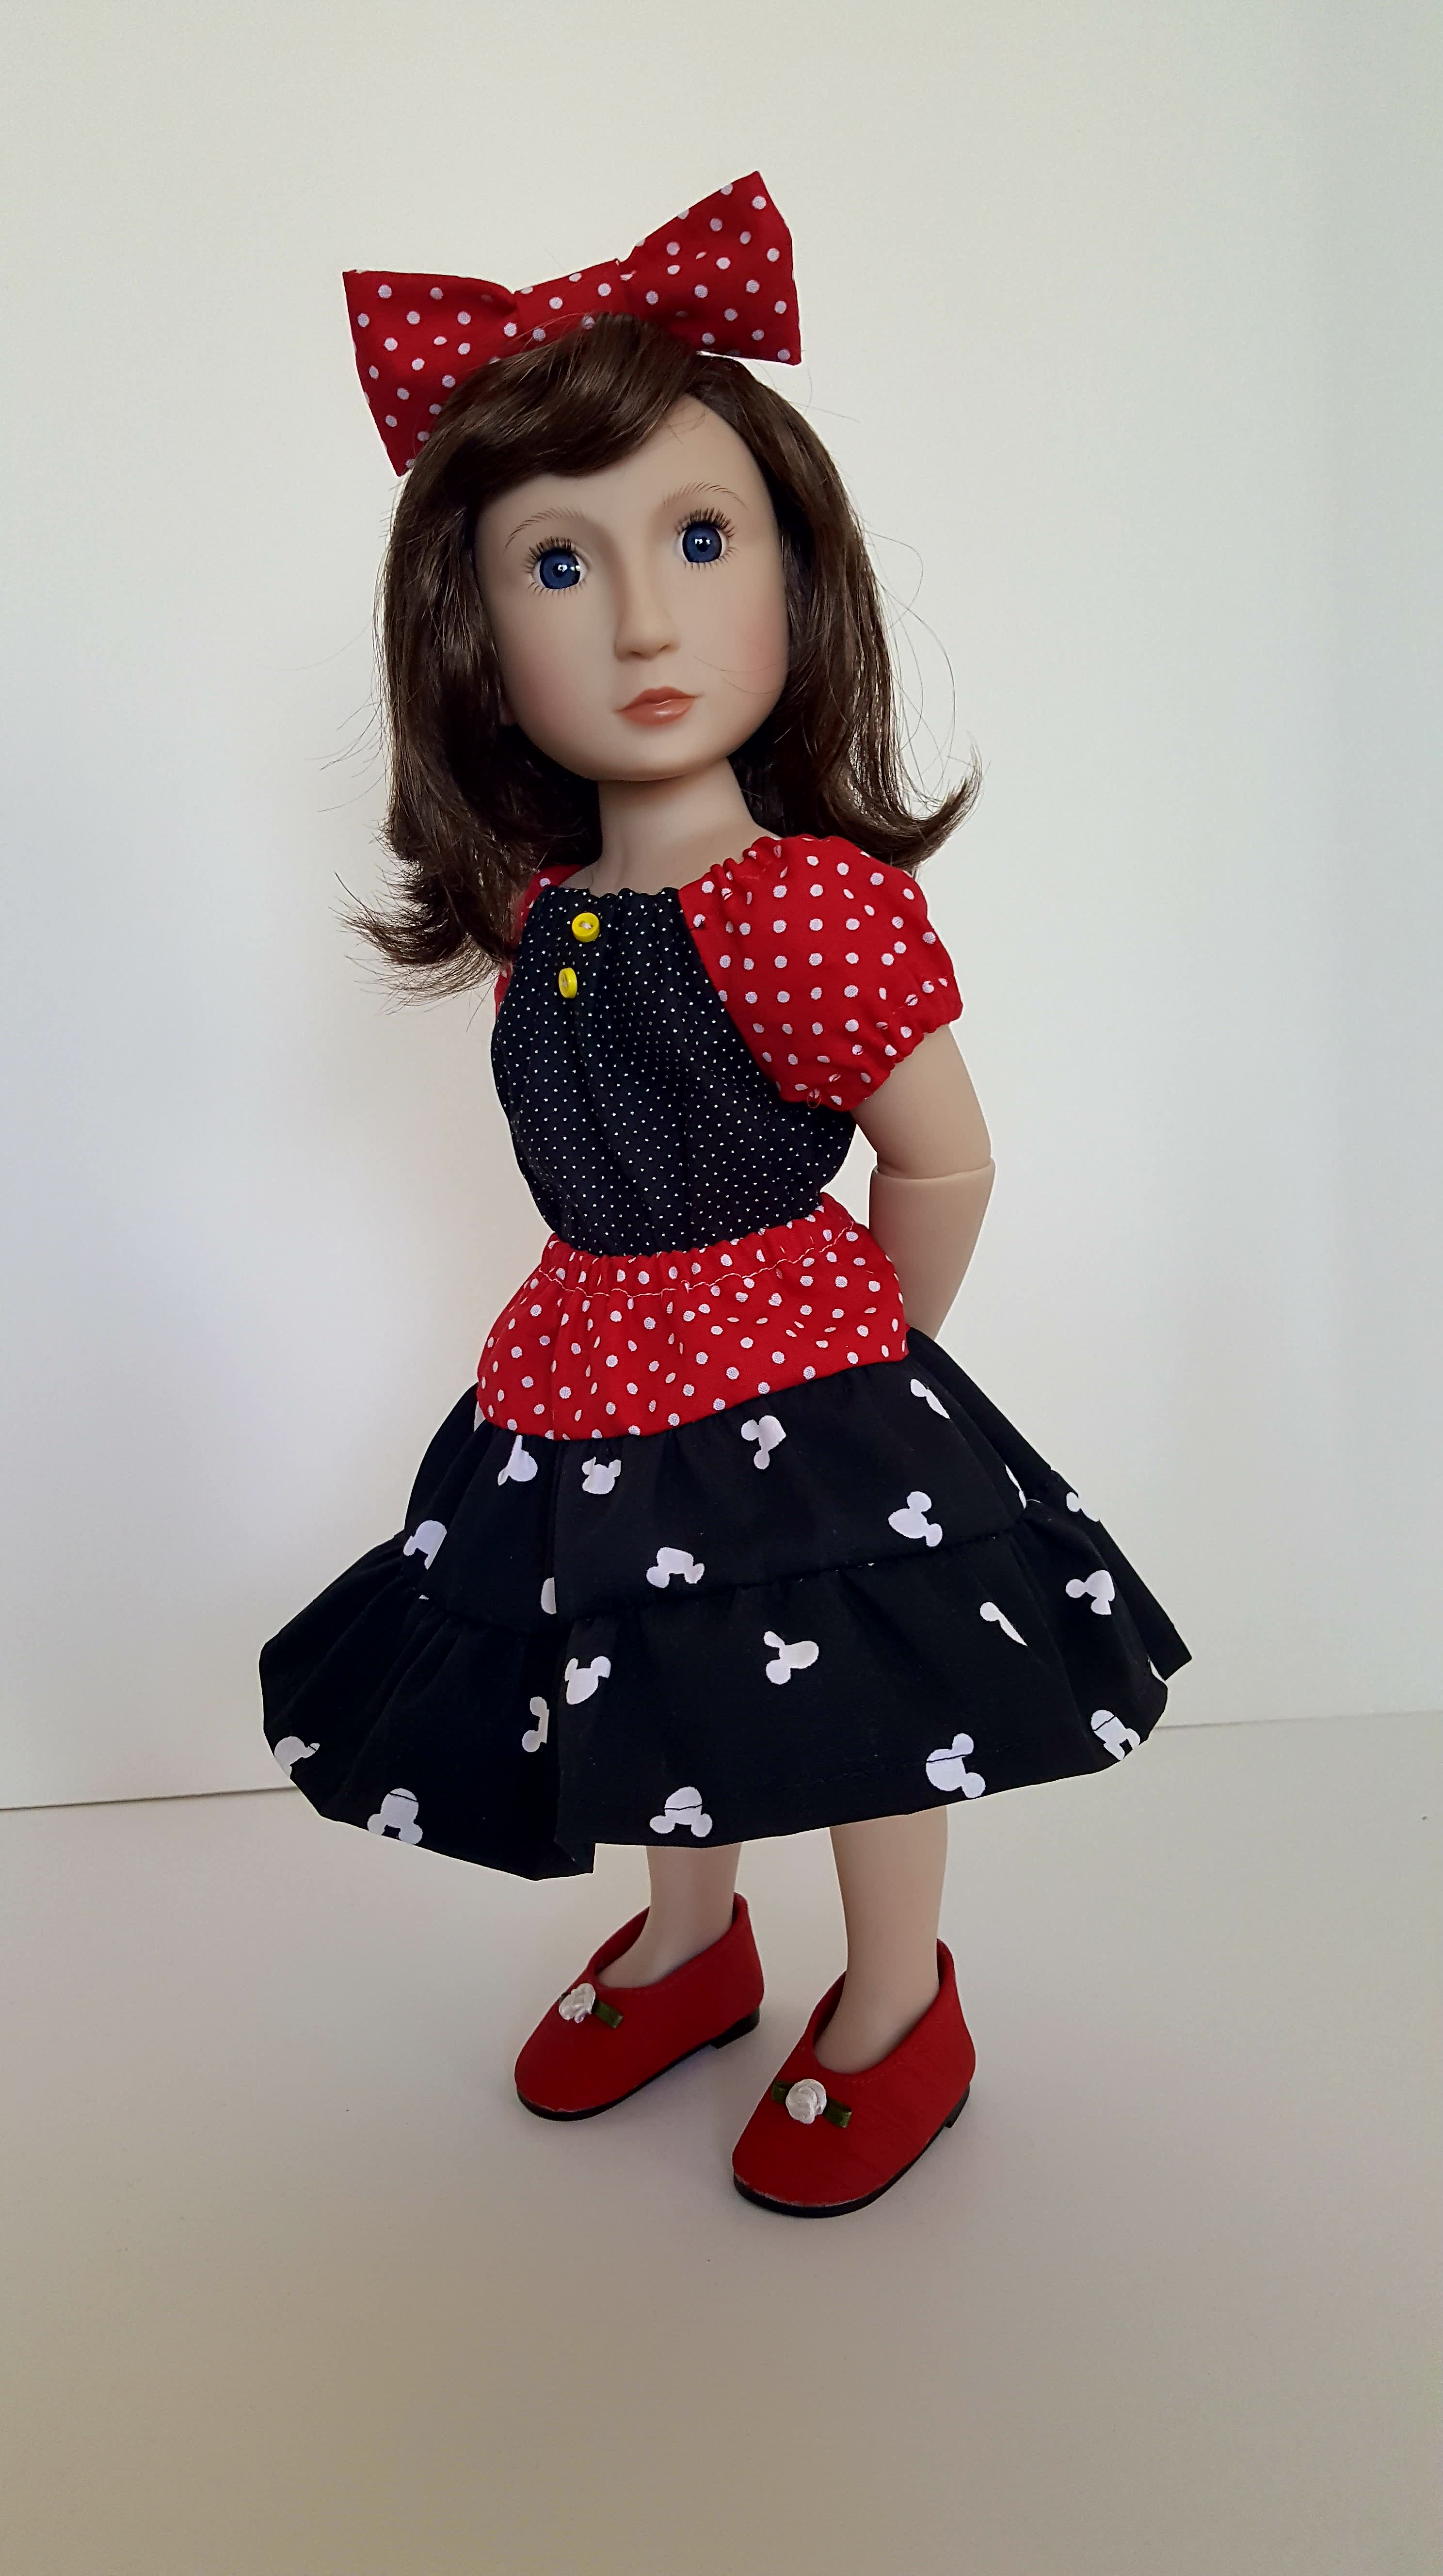 Make a peasant top and prairie skirt for the A Girl for All Time dolls with easy PDF Sewing patterns from Oh Sew Kat! on Etsy